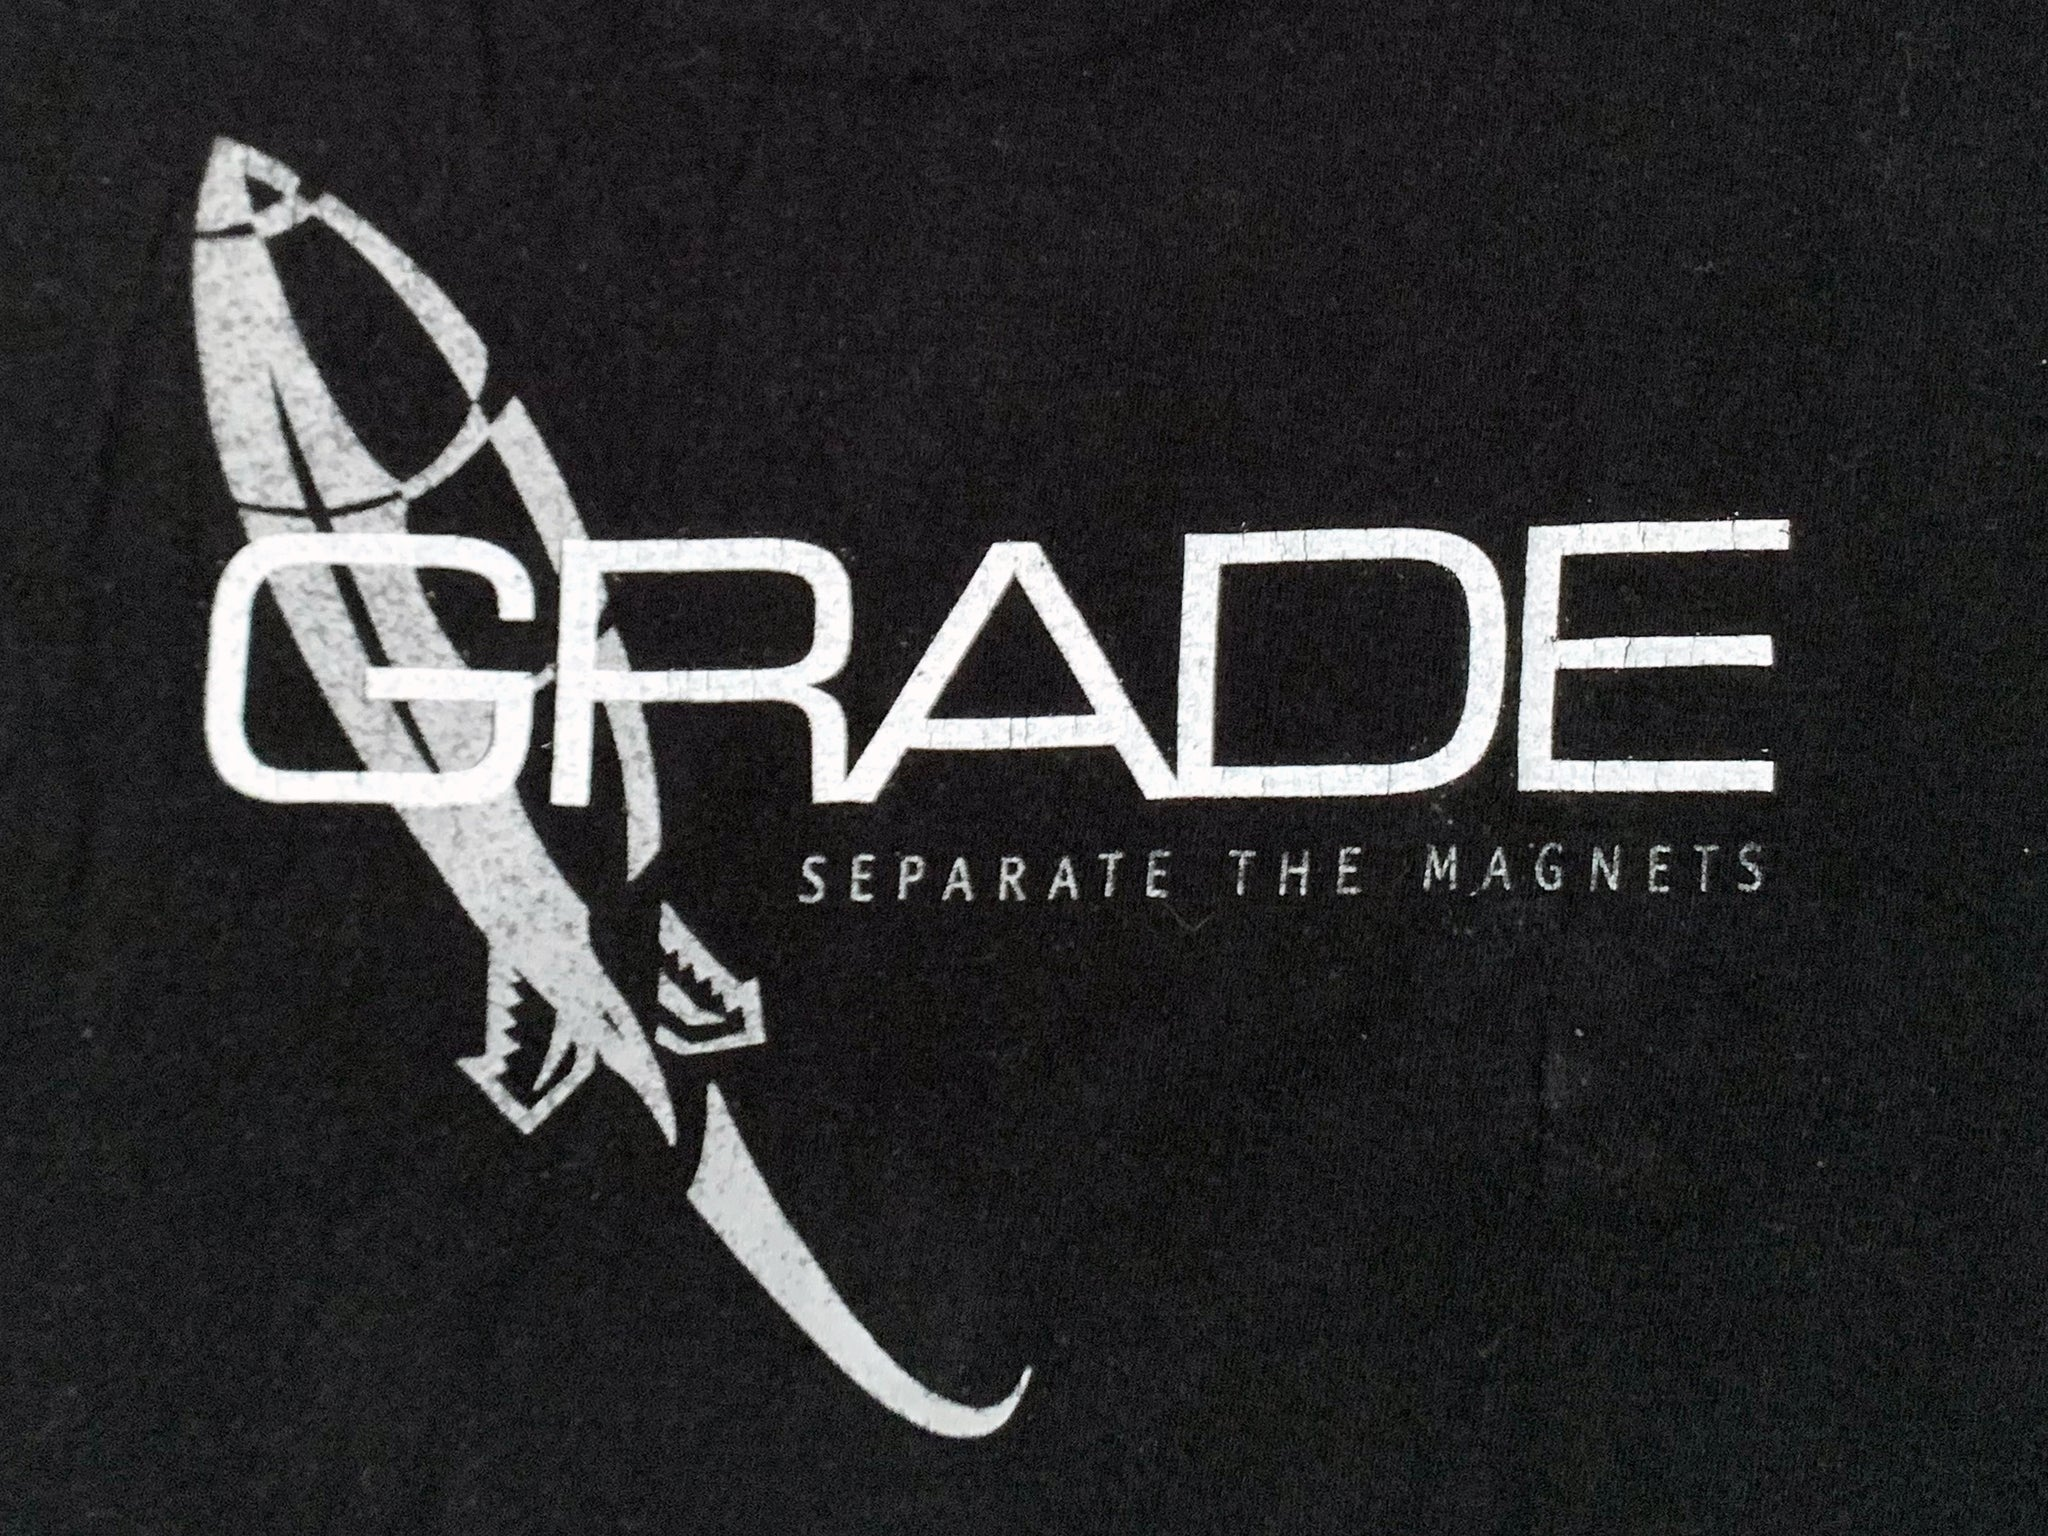 Grade Separate the Magnets Black T-Shirt